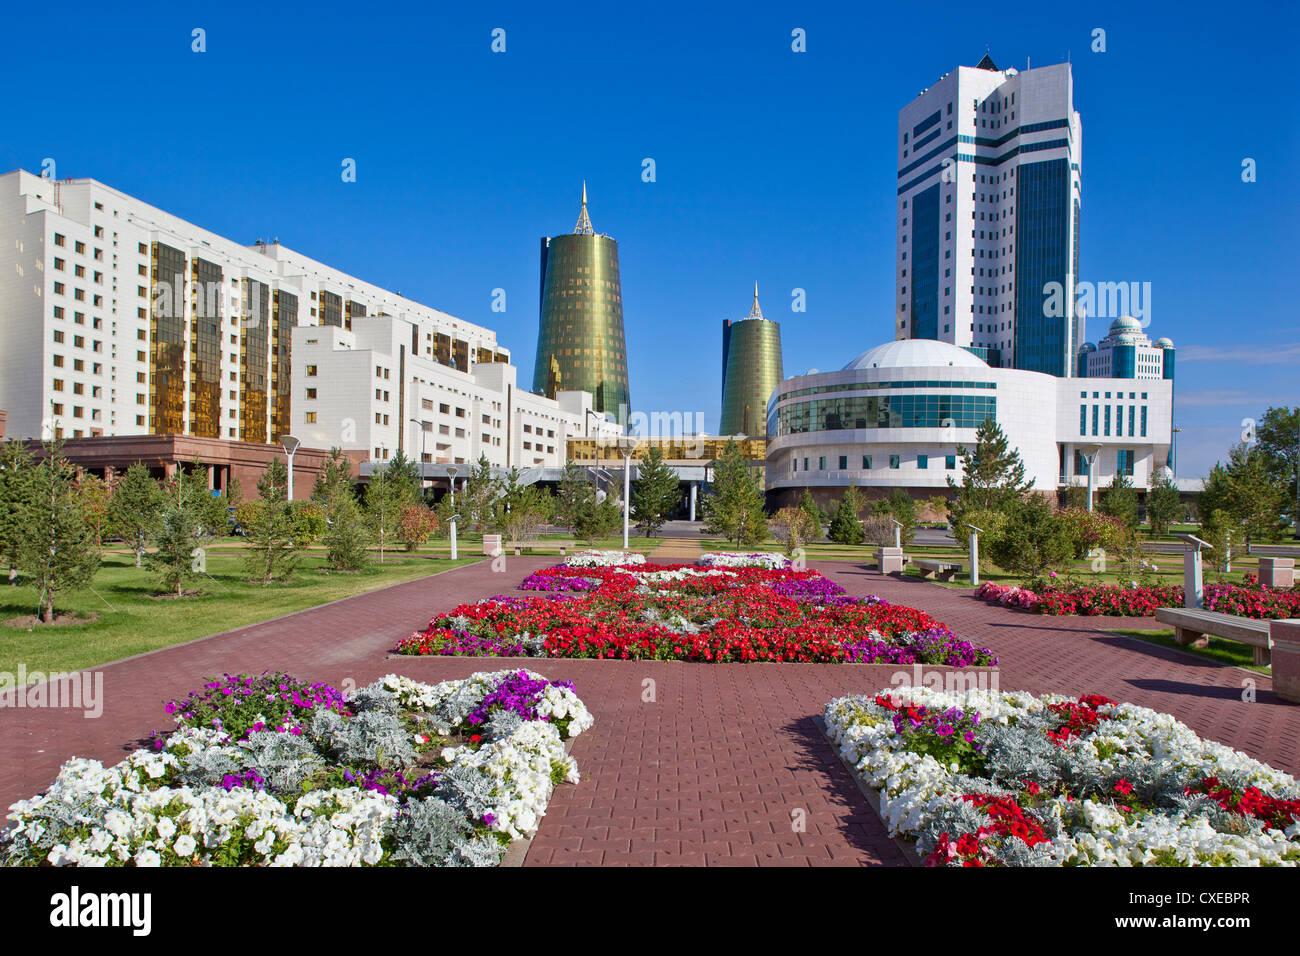 House of Ministries and twin golden conical business centres, Astana, Kazakhstan - Stock Image